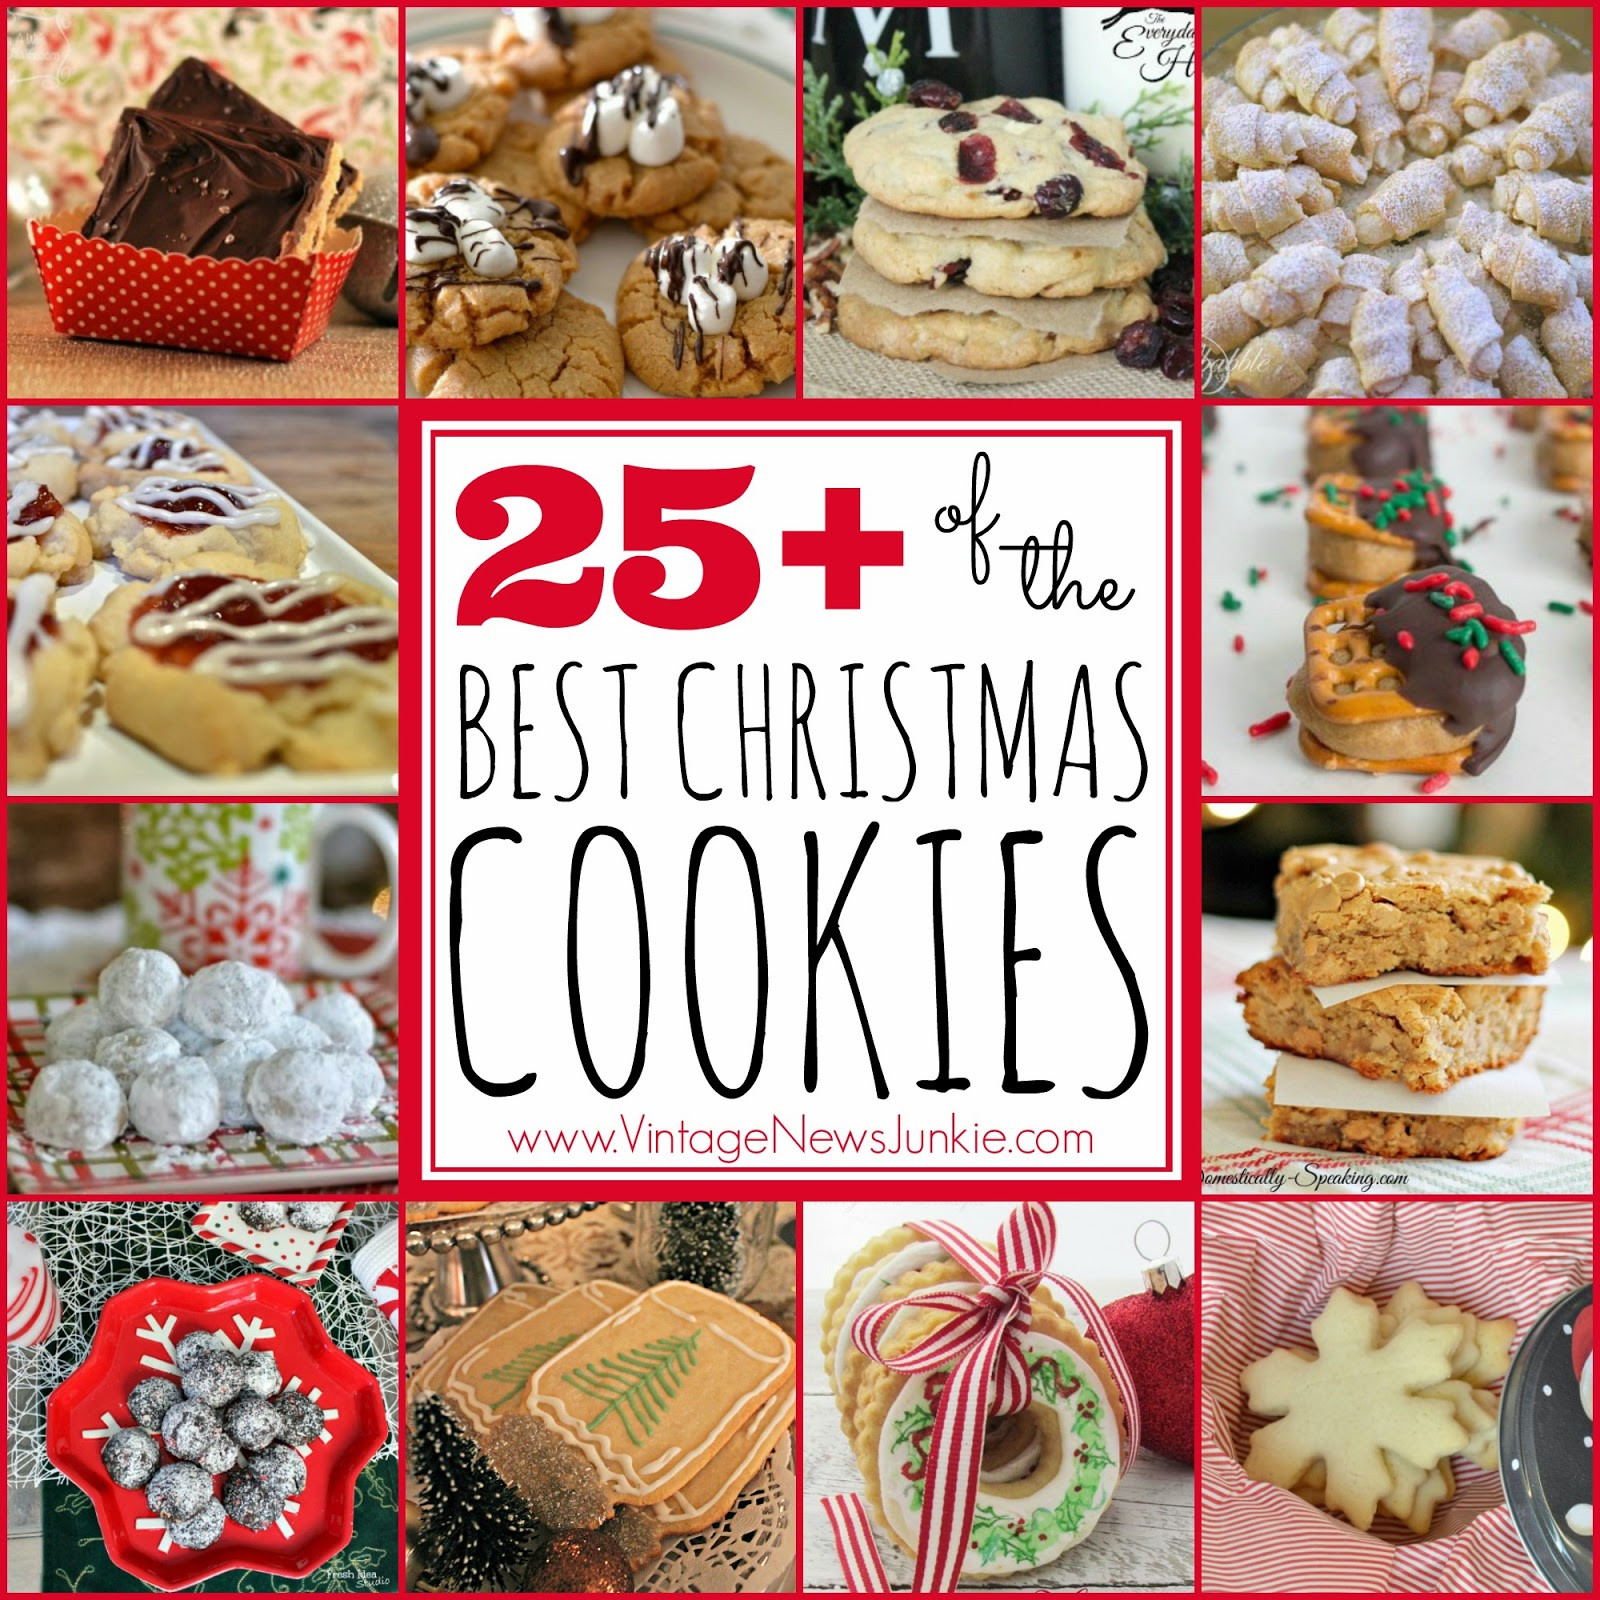 The Best Christmas Cookies Recipes  25 OF THE BEST CHRISTMAS COOKIE RECIPES Handy DIY